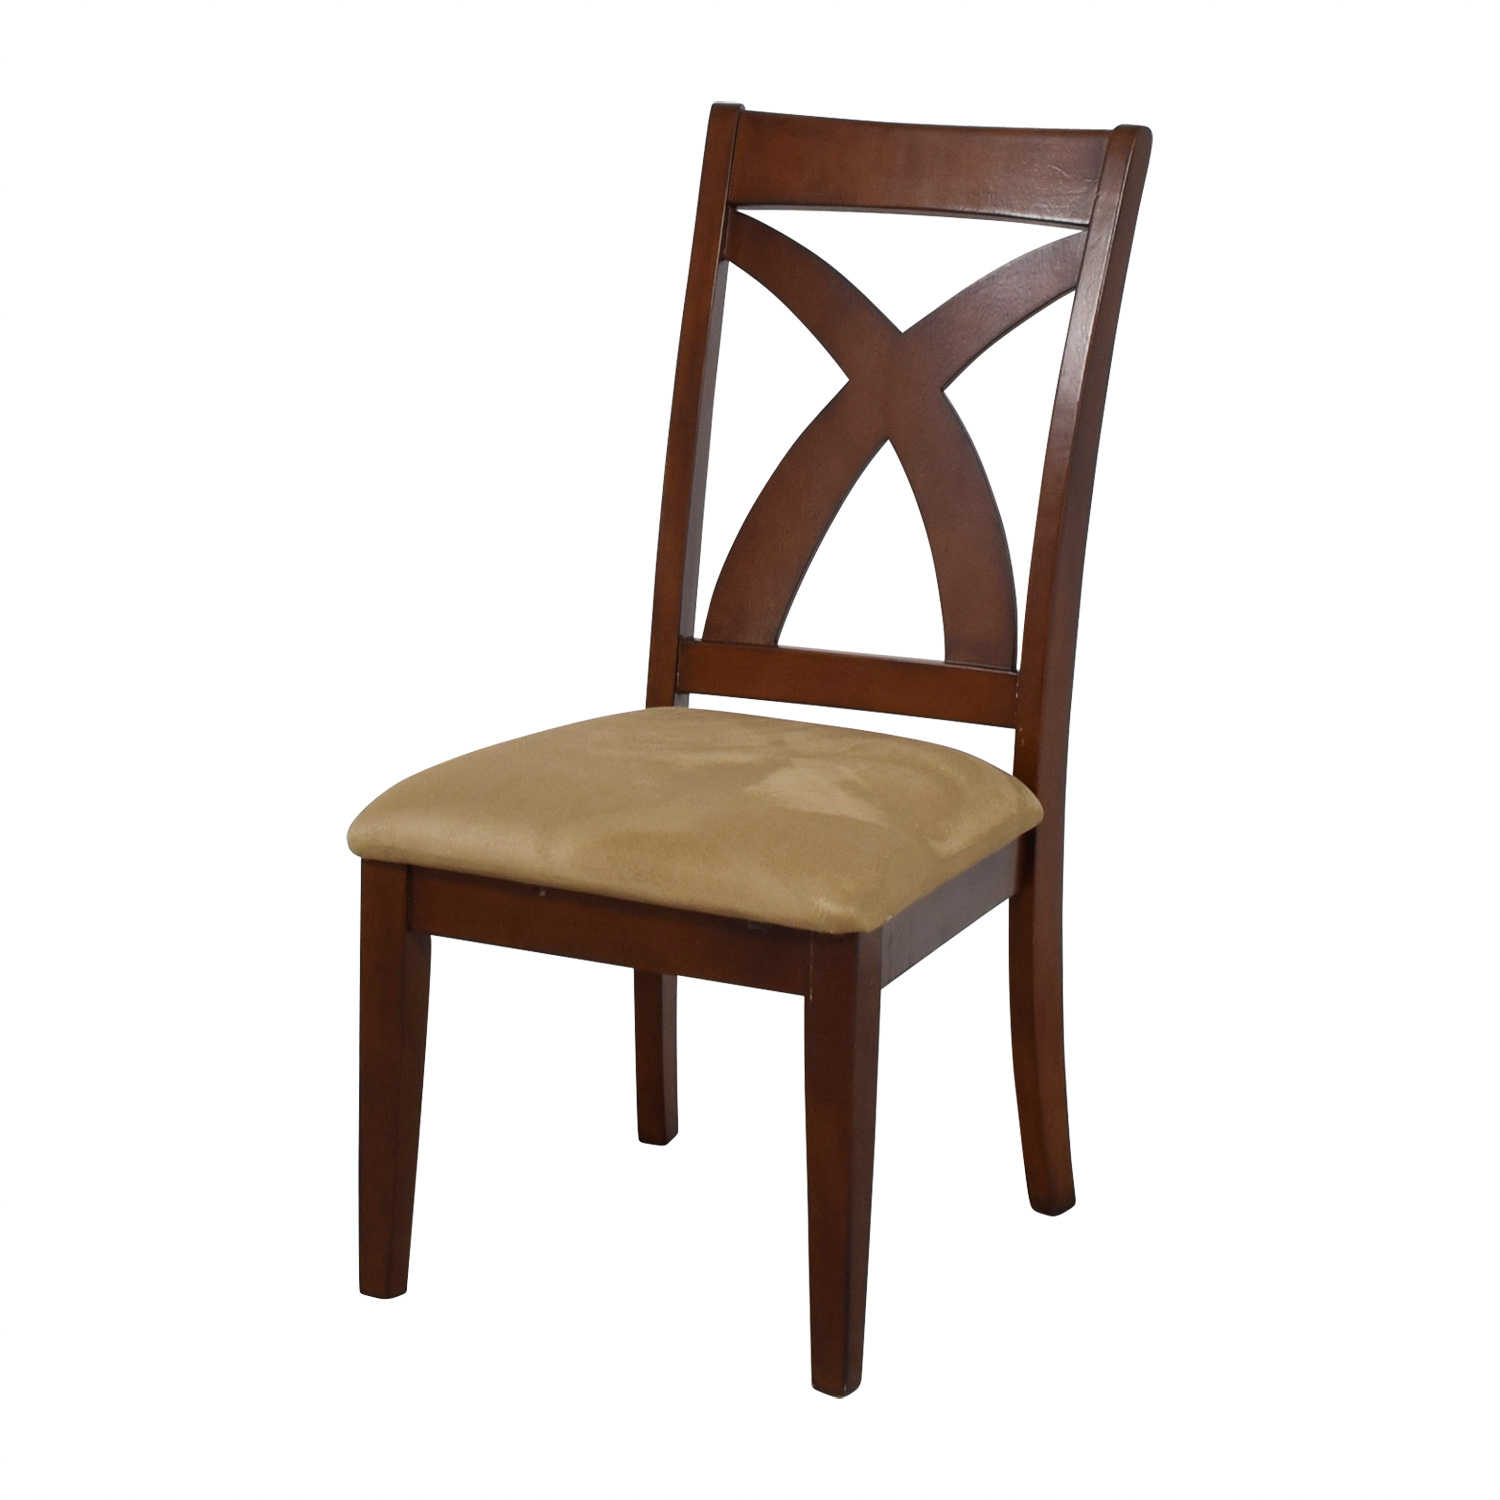 wood hand chair stand test validity 84 off solid with cross back and padded seat